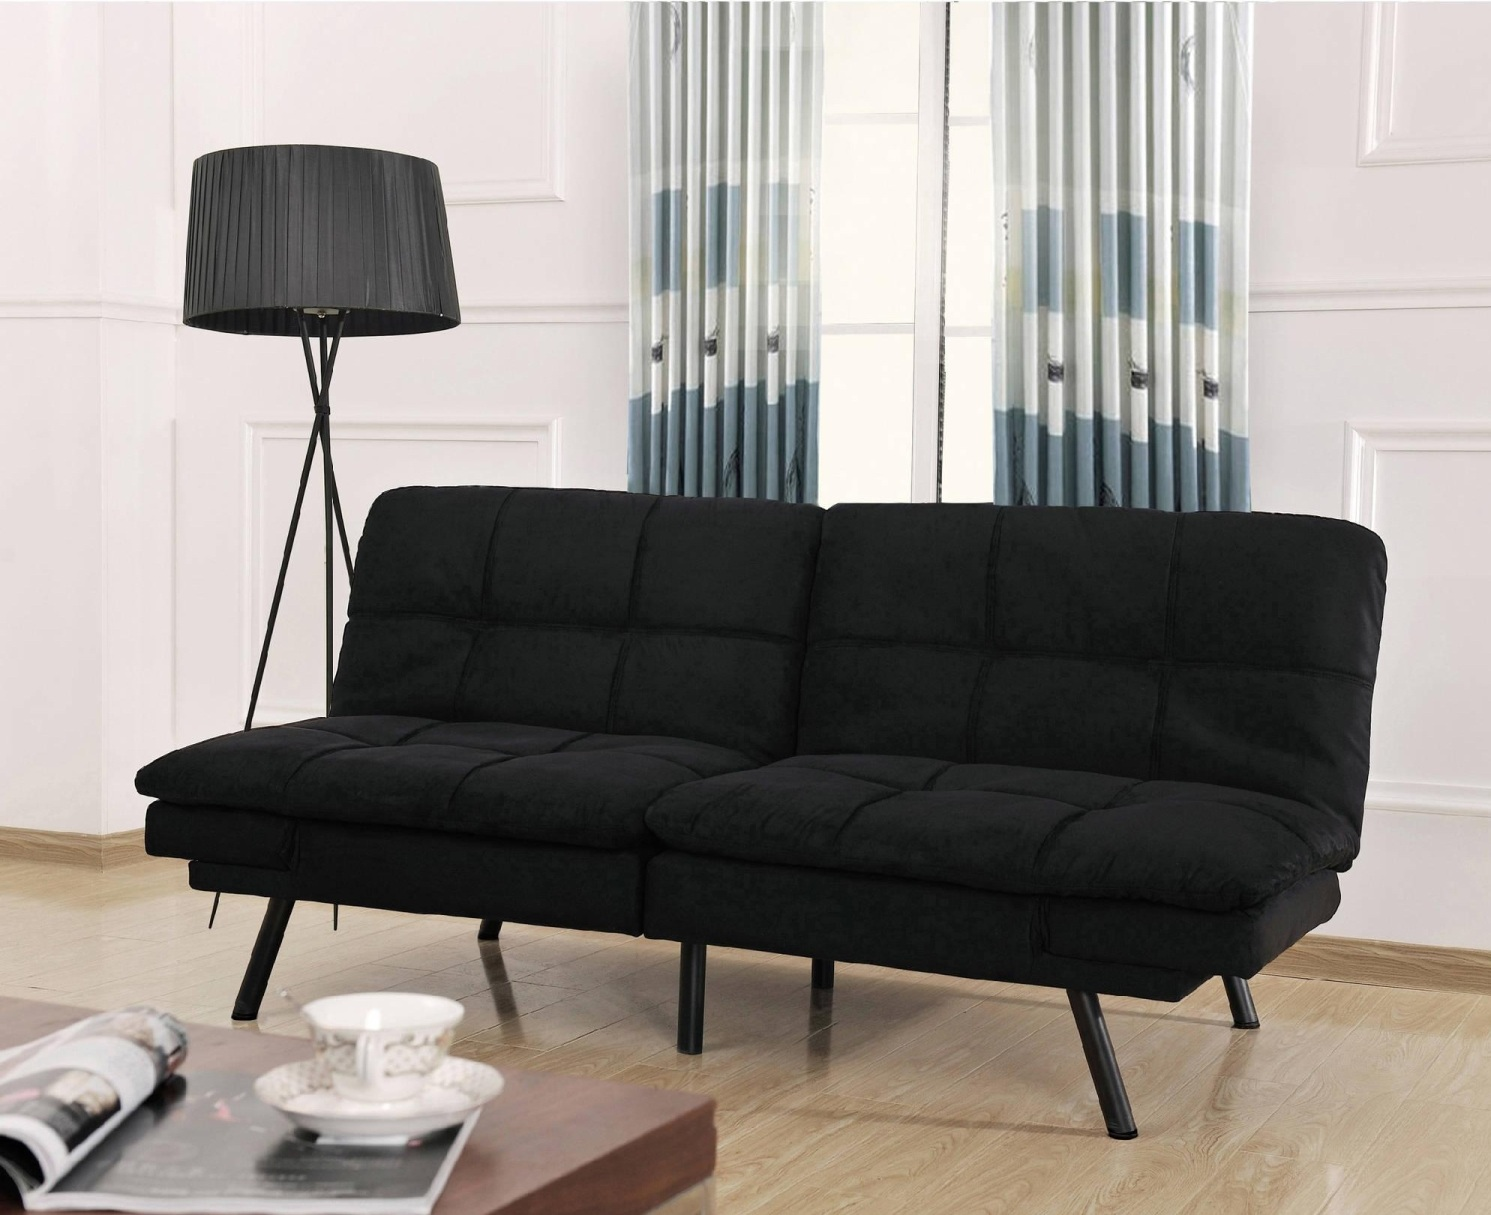 Narrow Sofas Depth Sofa Cool 28 Images Narrow Sofas